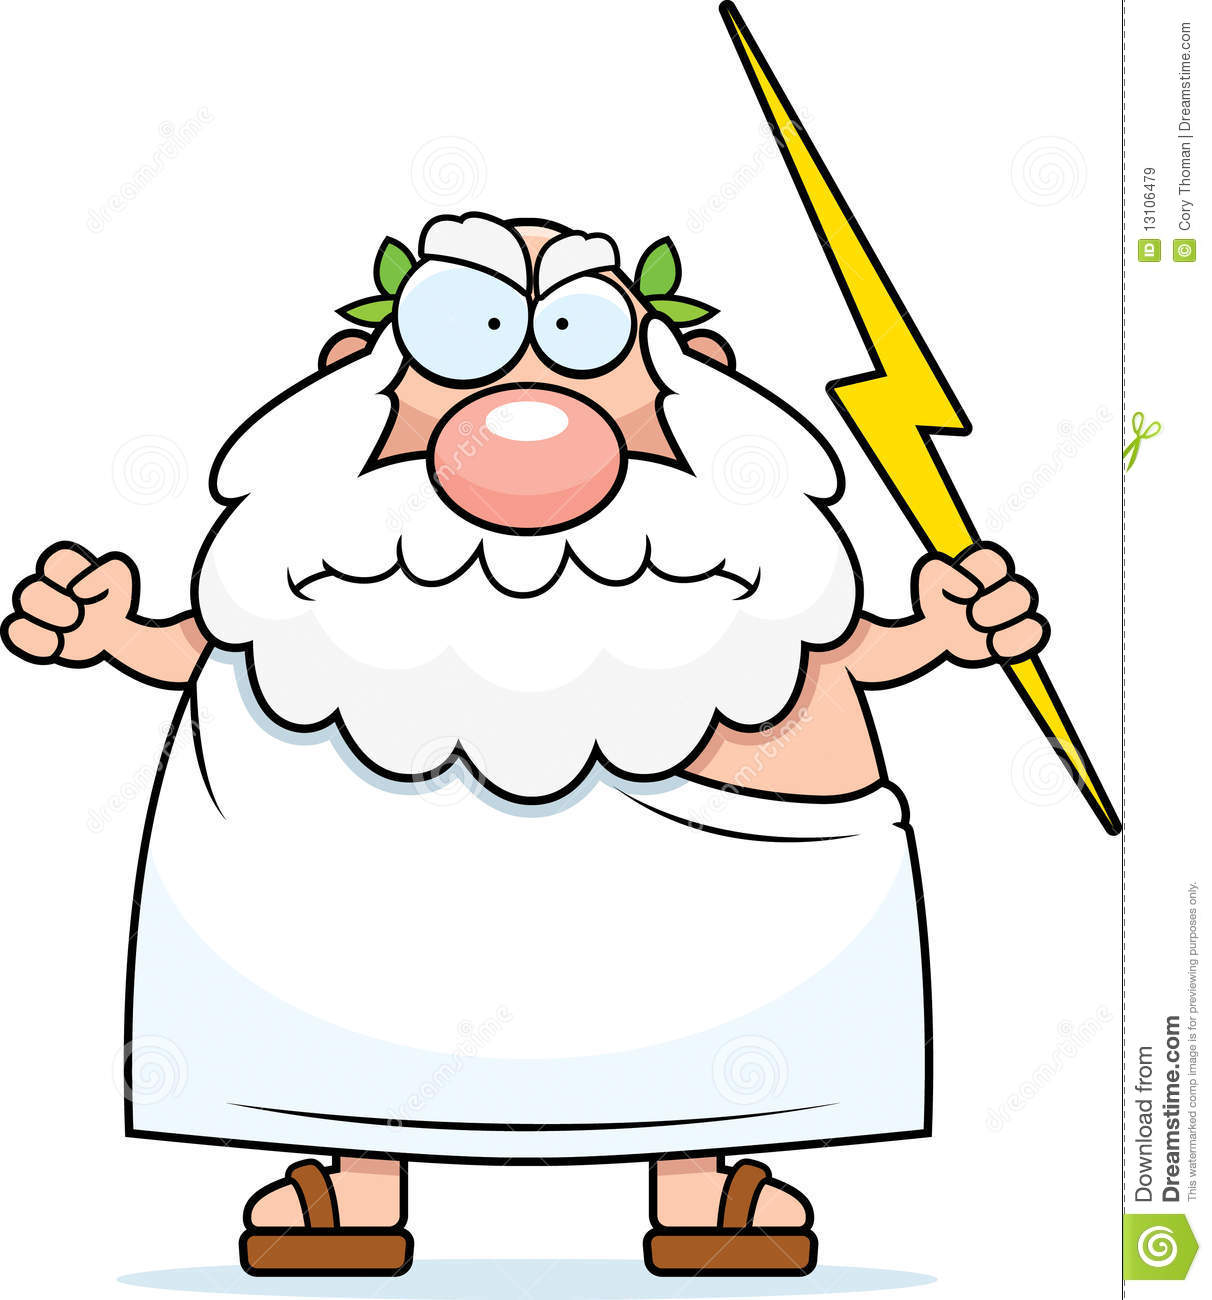 picture free Zeus clipart cute. Free download best on